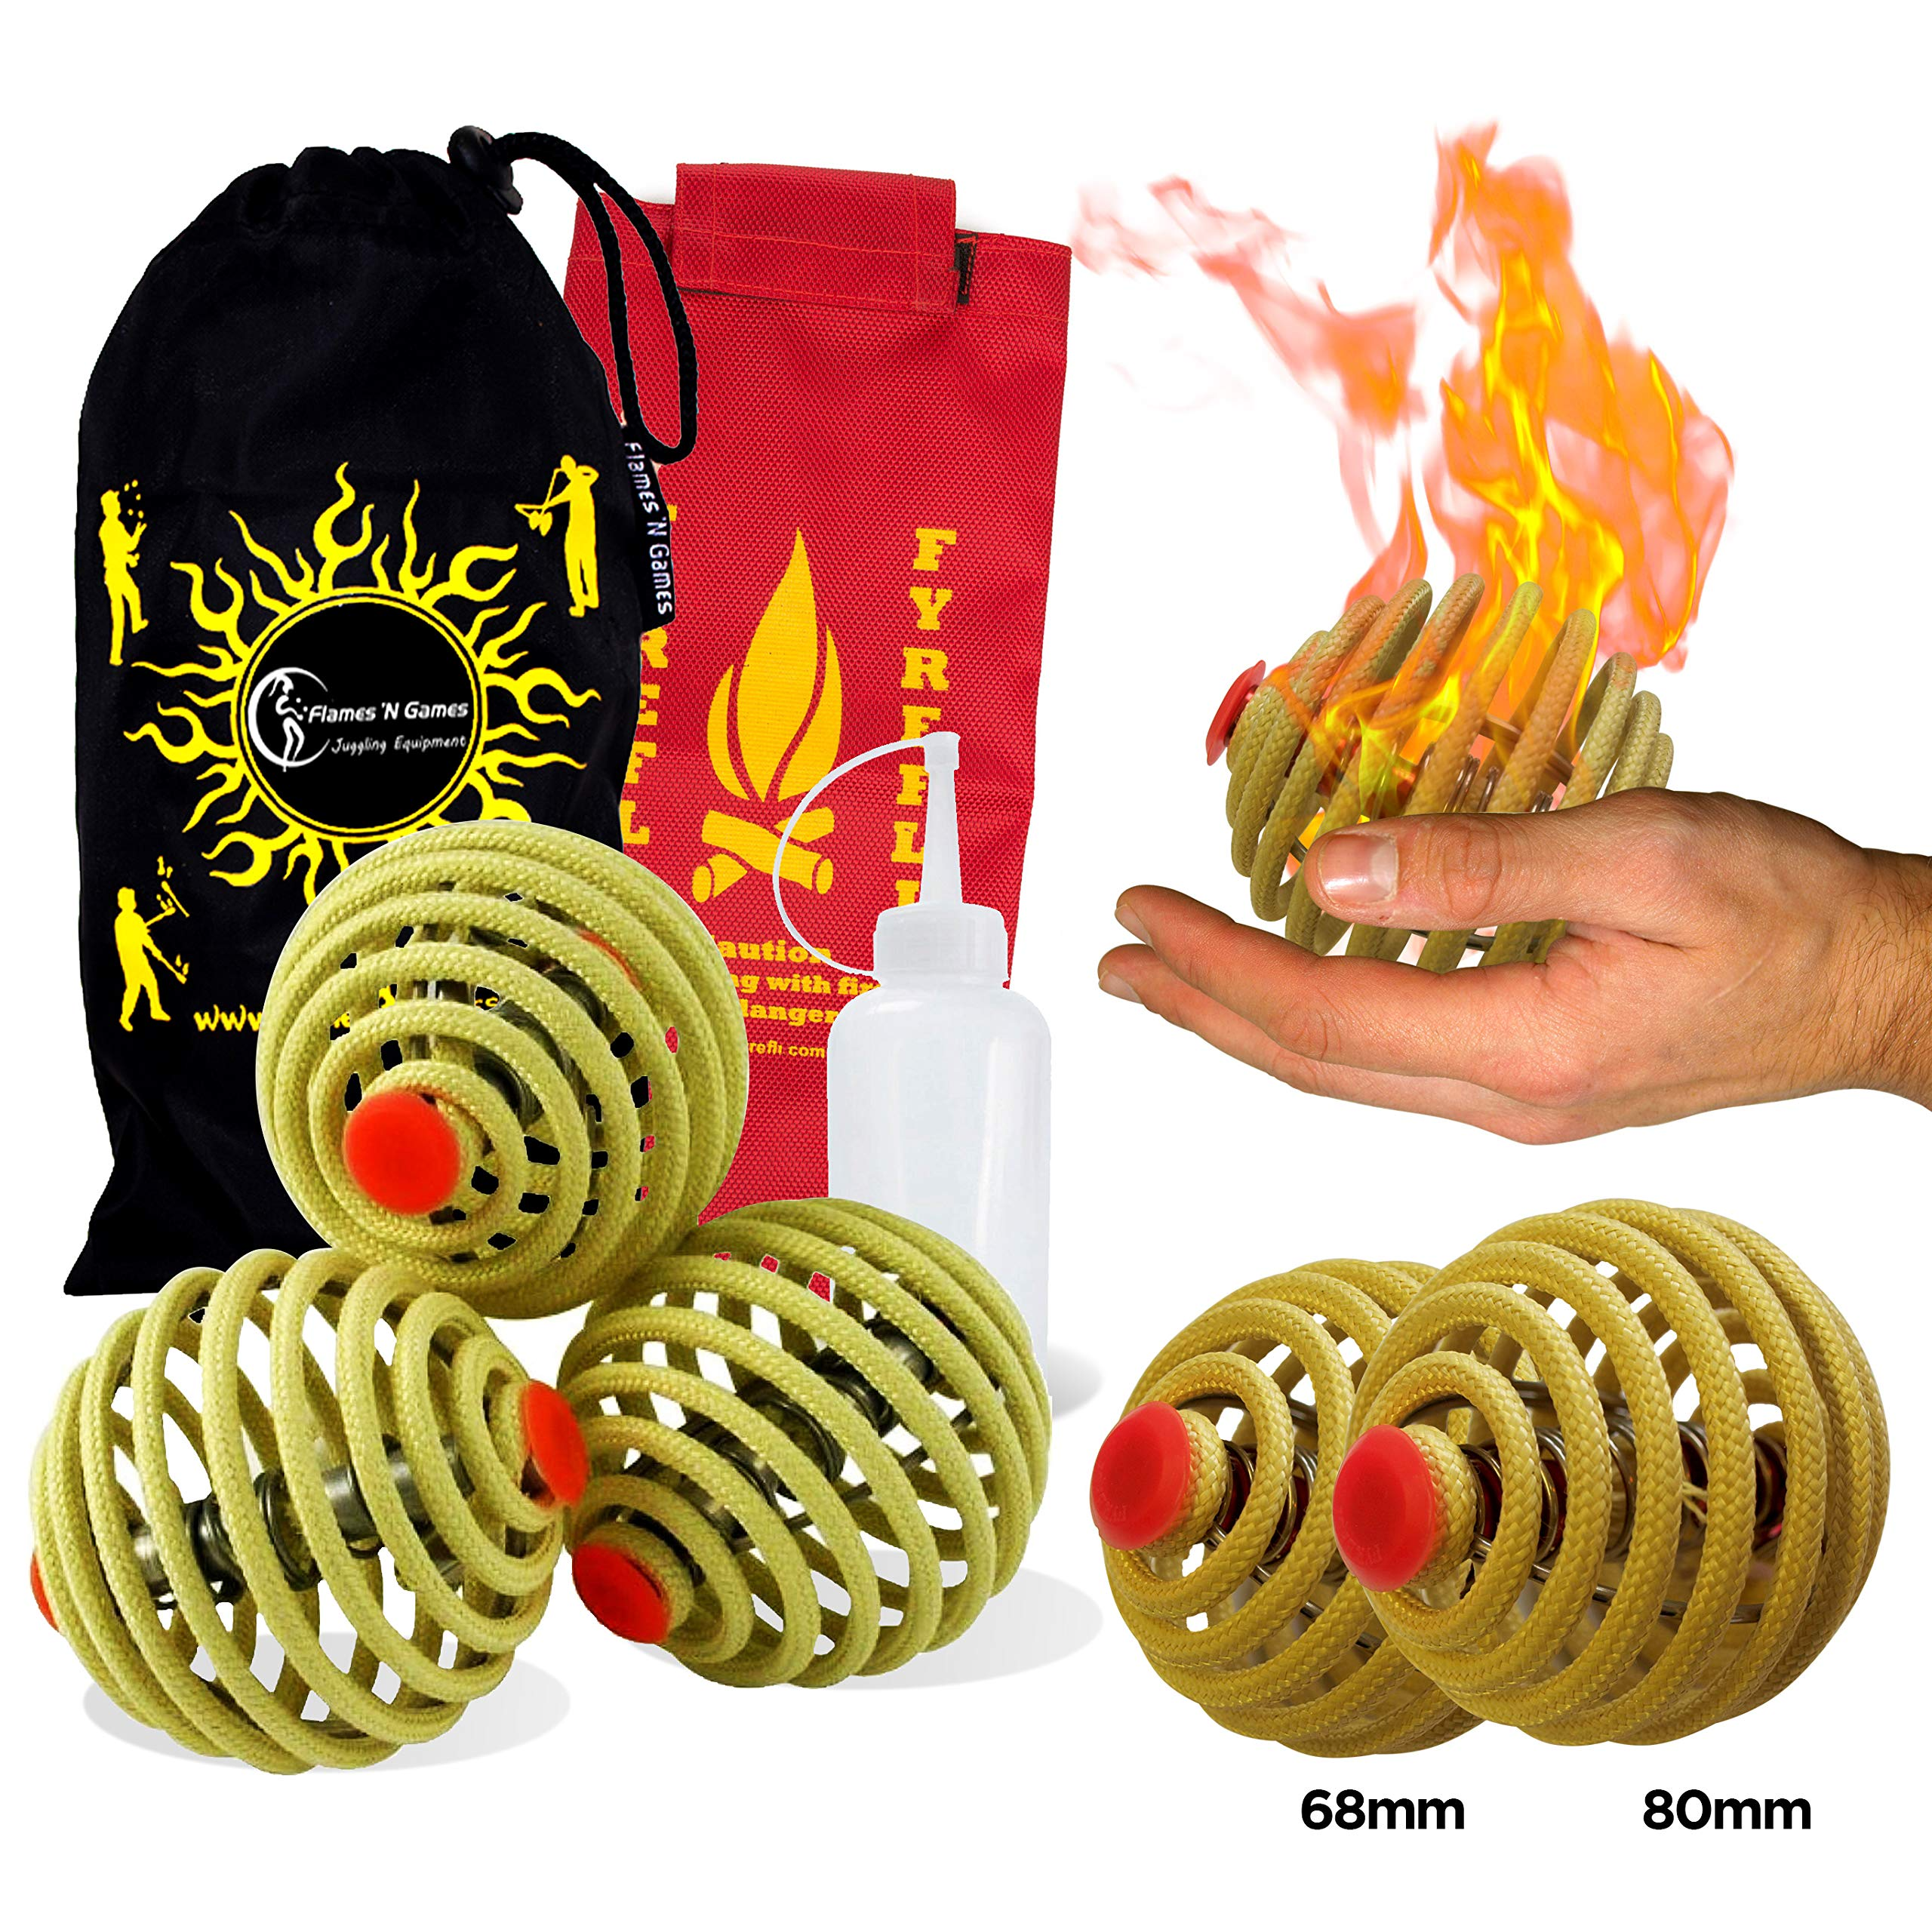 Flames N Games Commando White Camo Flowerstick Juggling Sticks Flower Stick Set with Wooden Hand Sticks and Travel Bag! Flames N Games